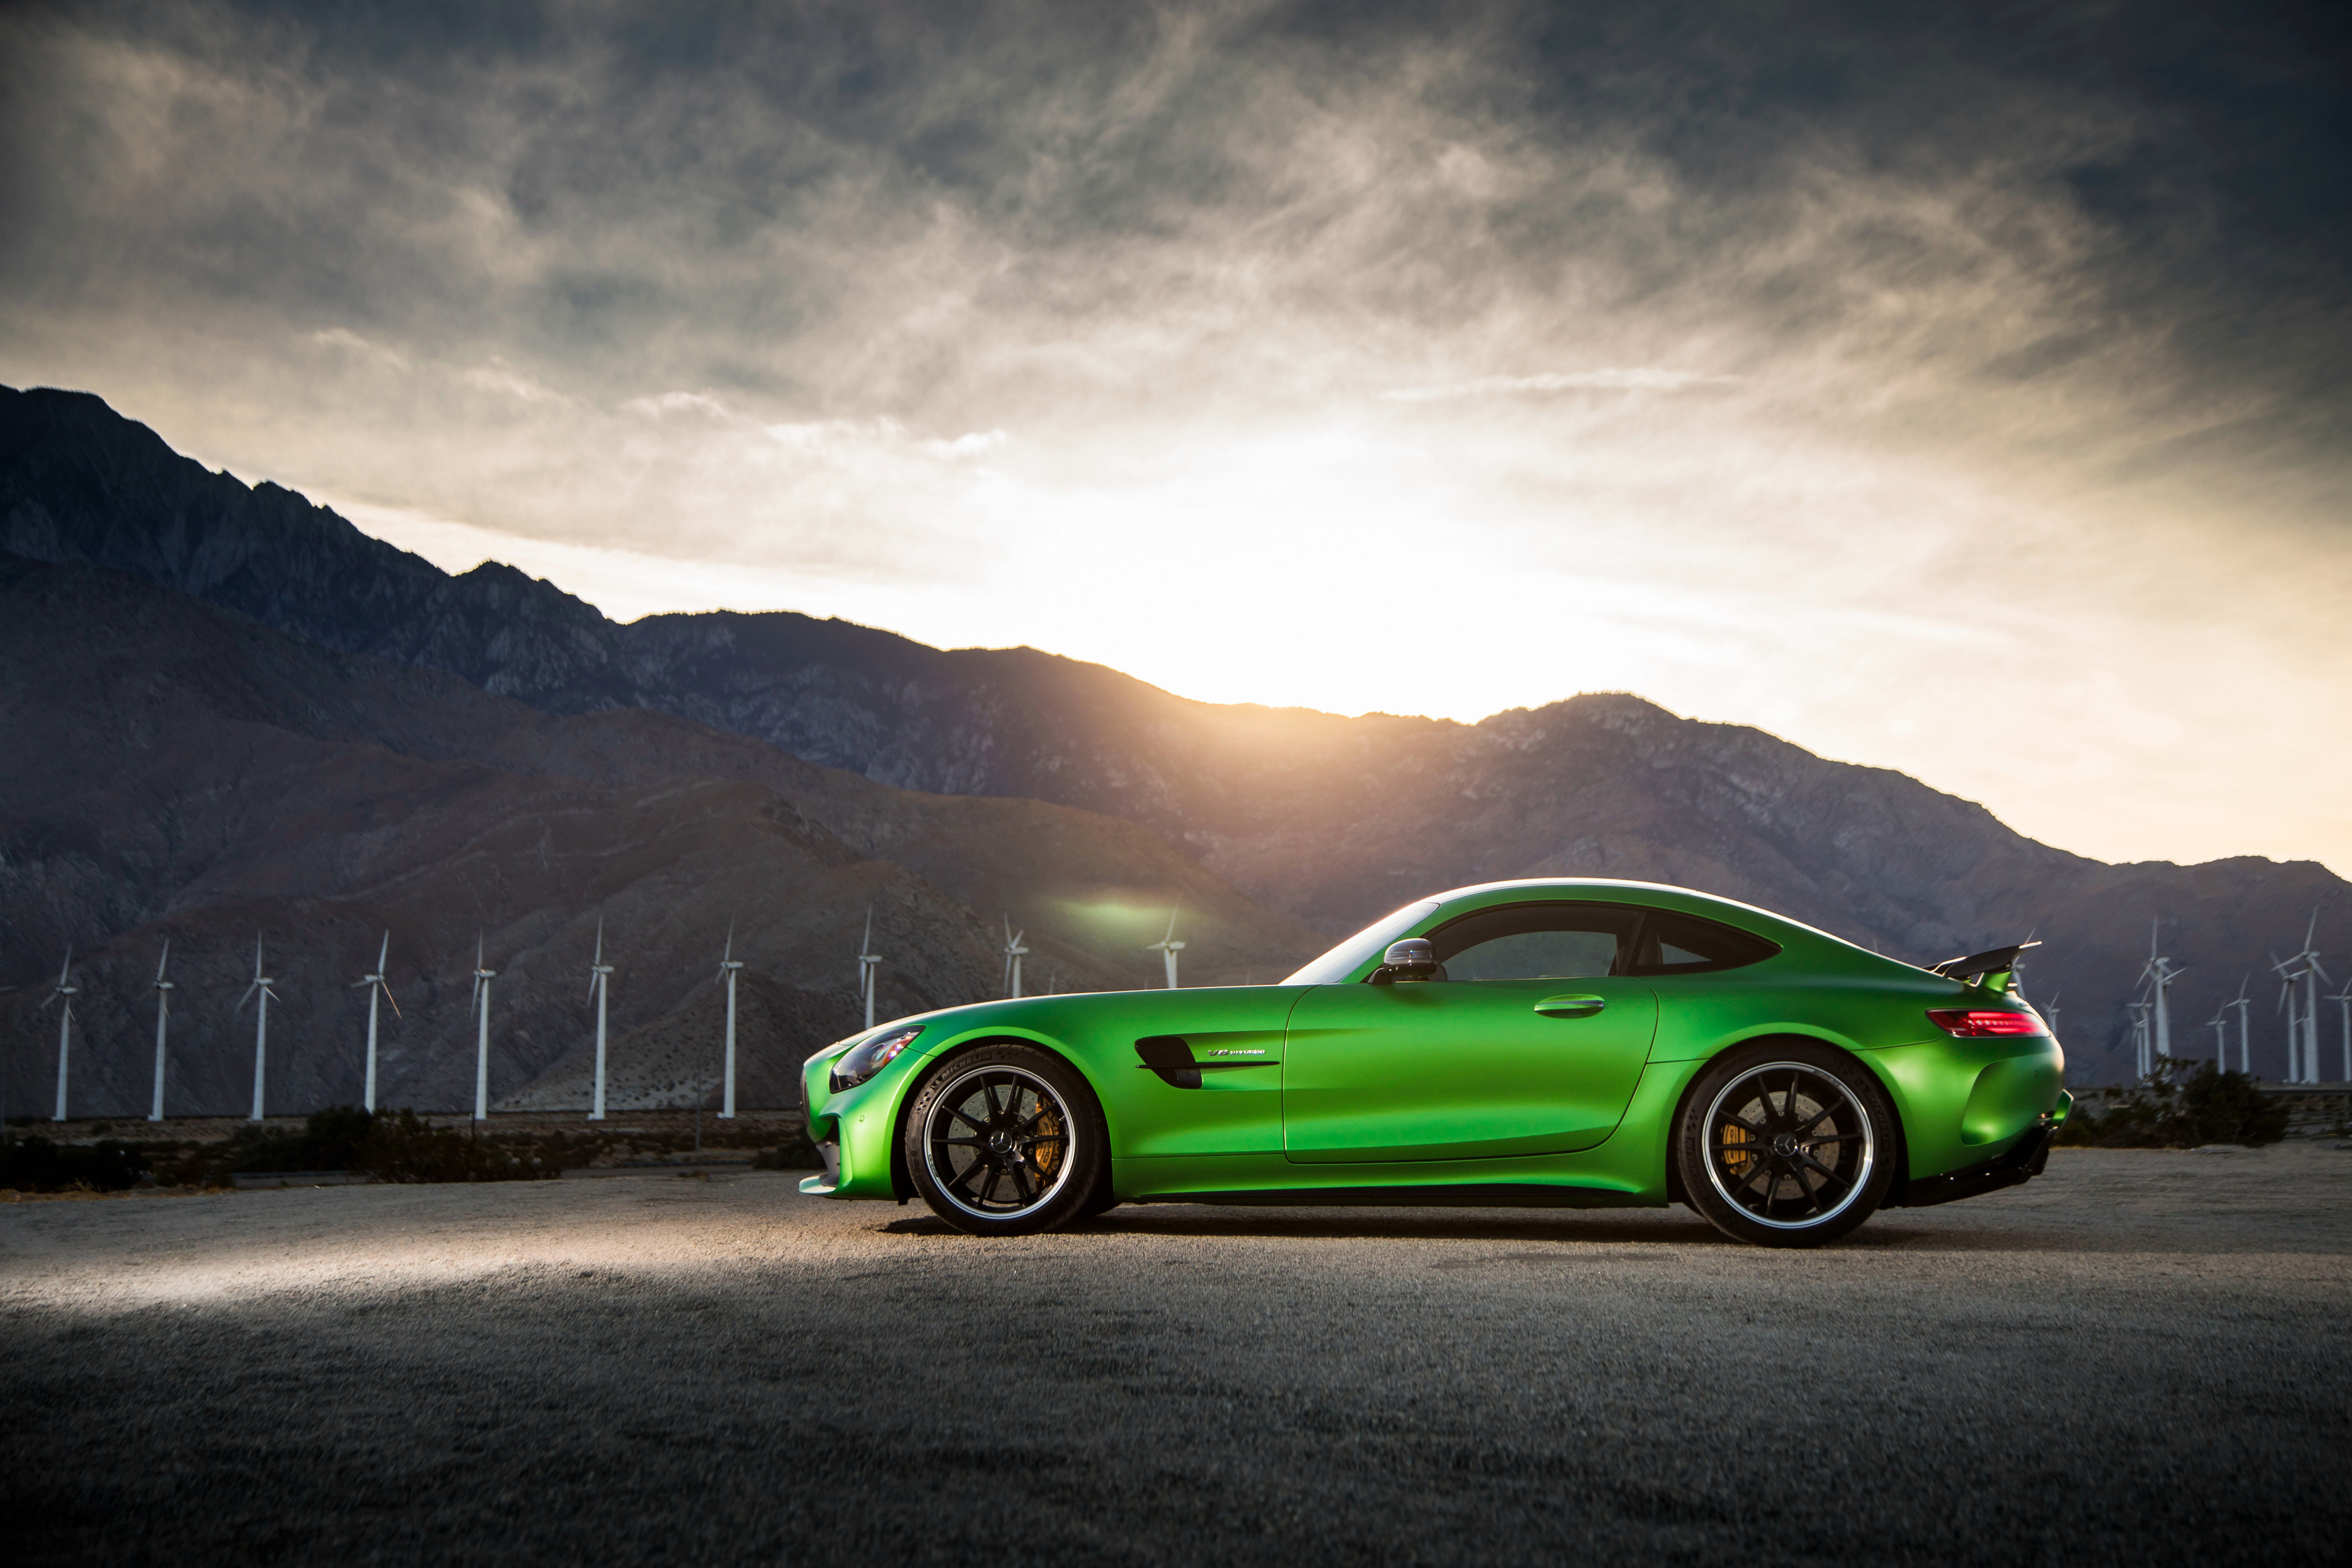 640x960 Mercedes Amg Gt R Side View Iphone 4 Iphone 4s Hd 4k